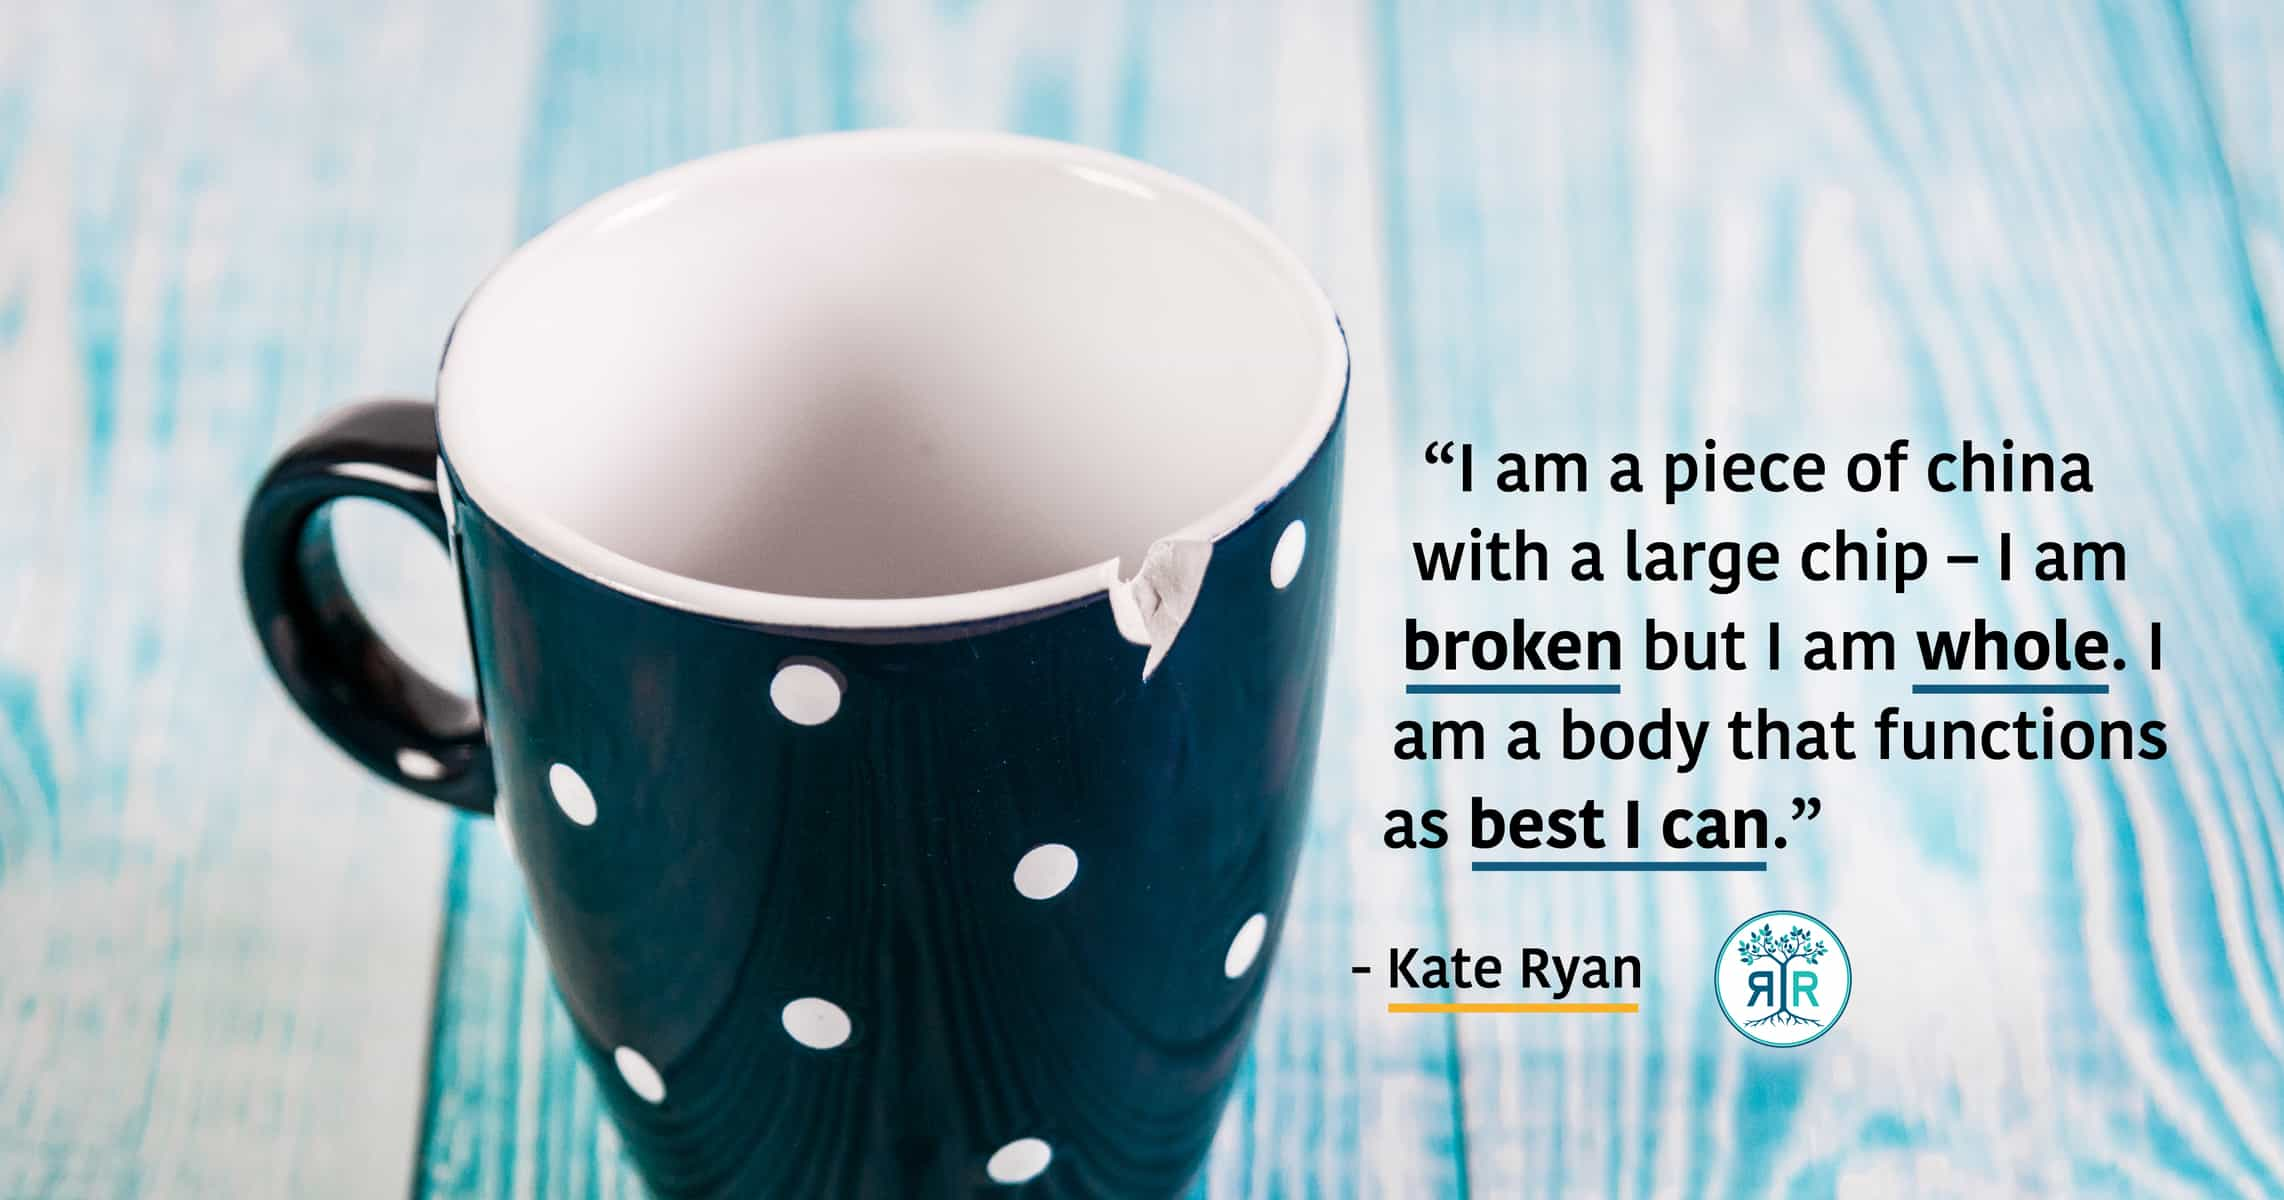 "Quote by Kate Ryan: ""I am a piece of china with a large chip – I am broken but I am whole.  I am a body that functions as best I can."" To the left is dark blue porcelain mug with white polka dots. The mug is chipped."